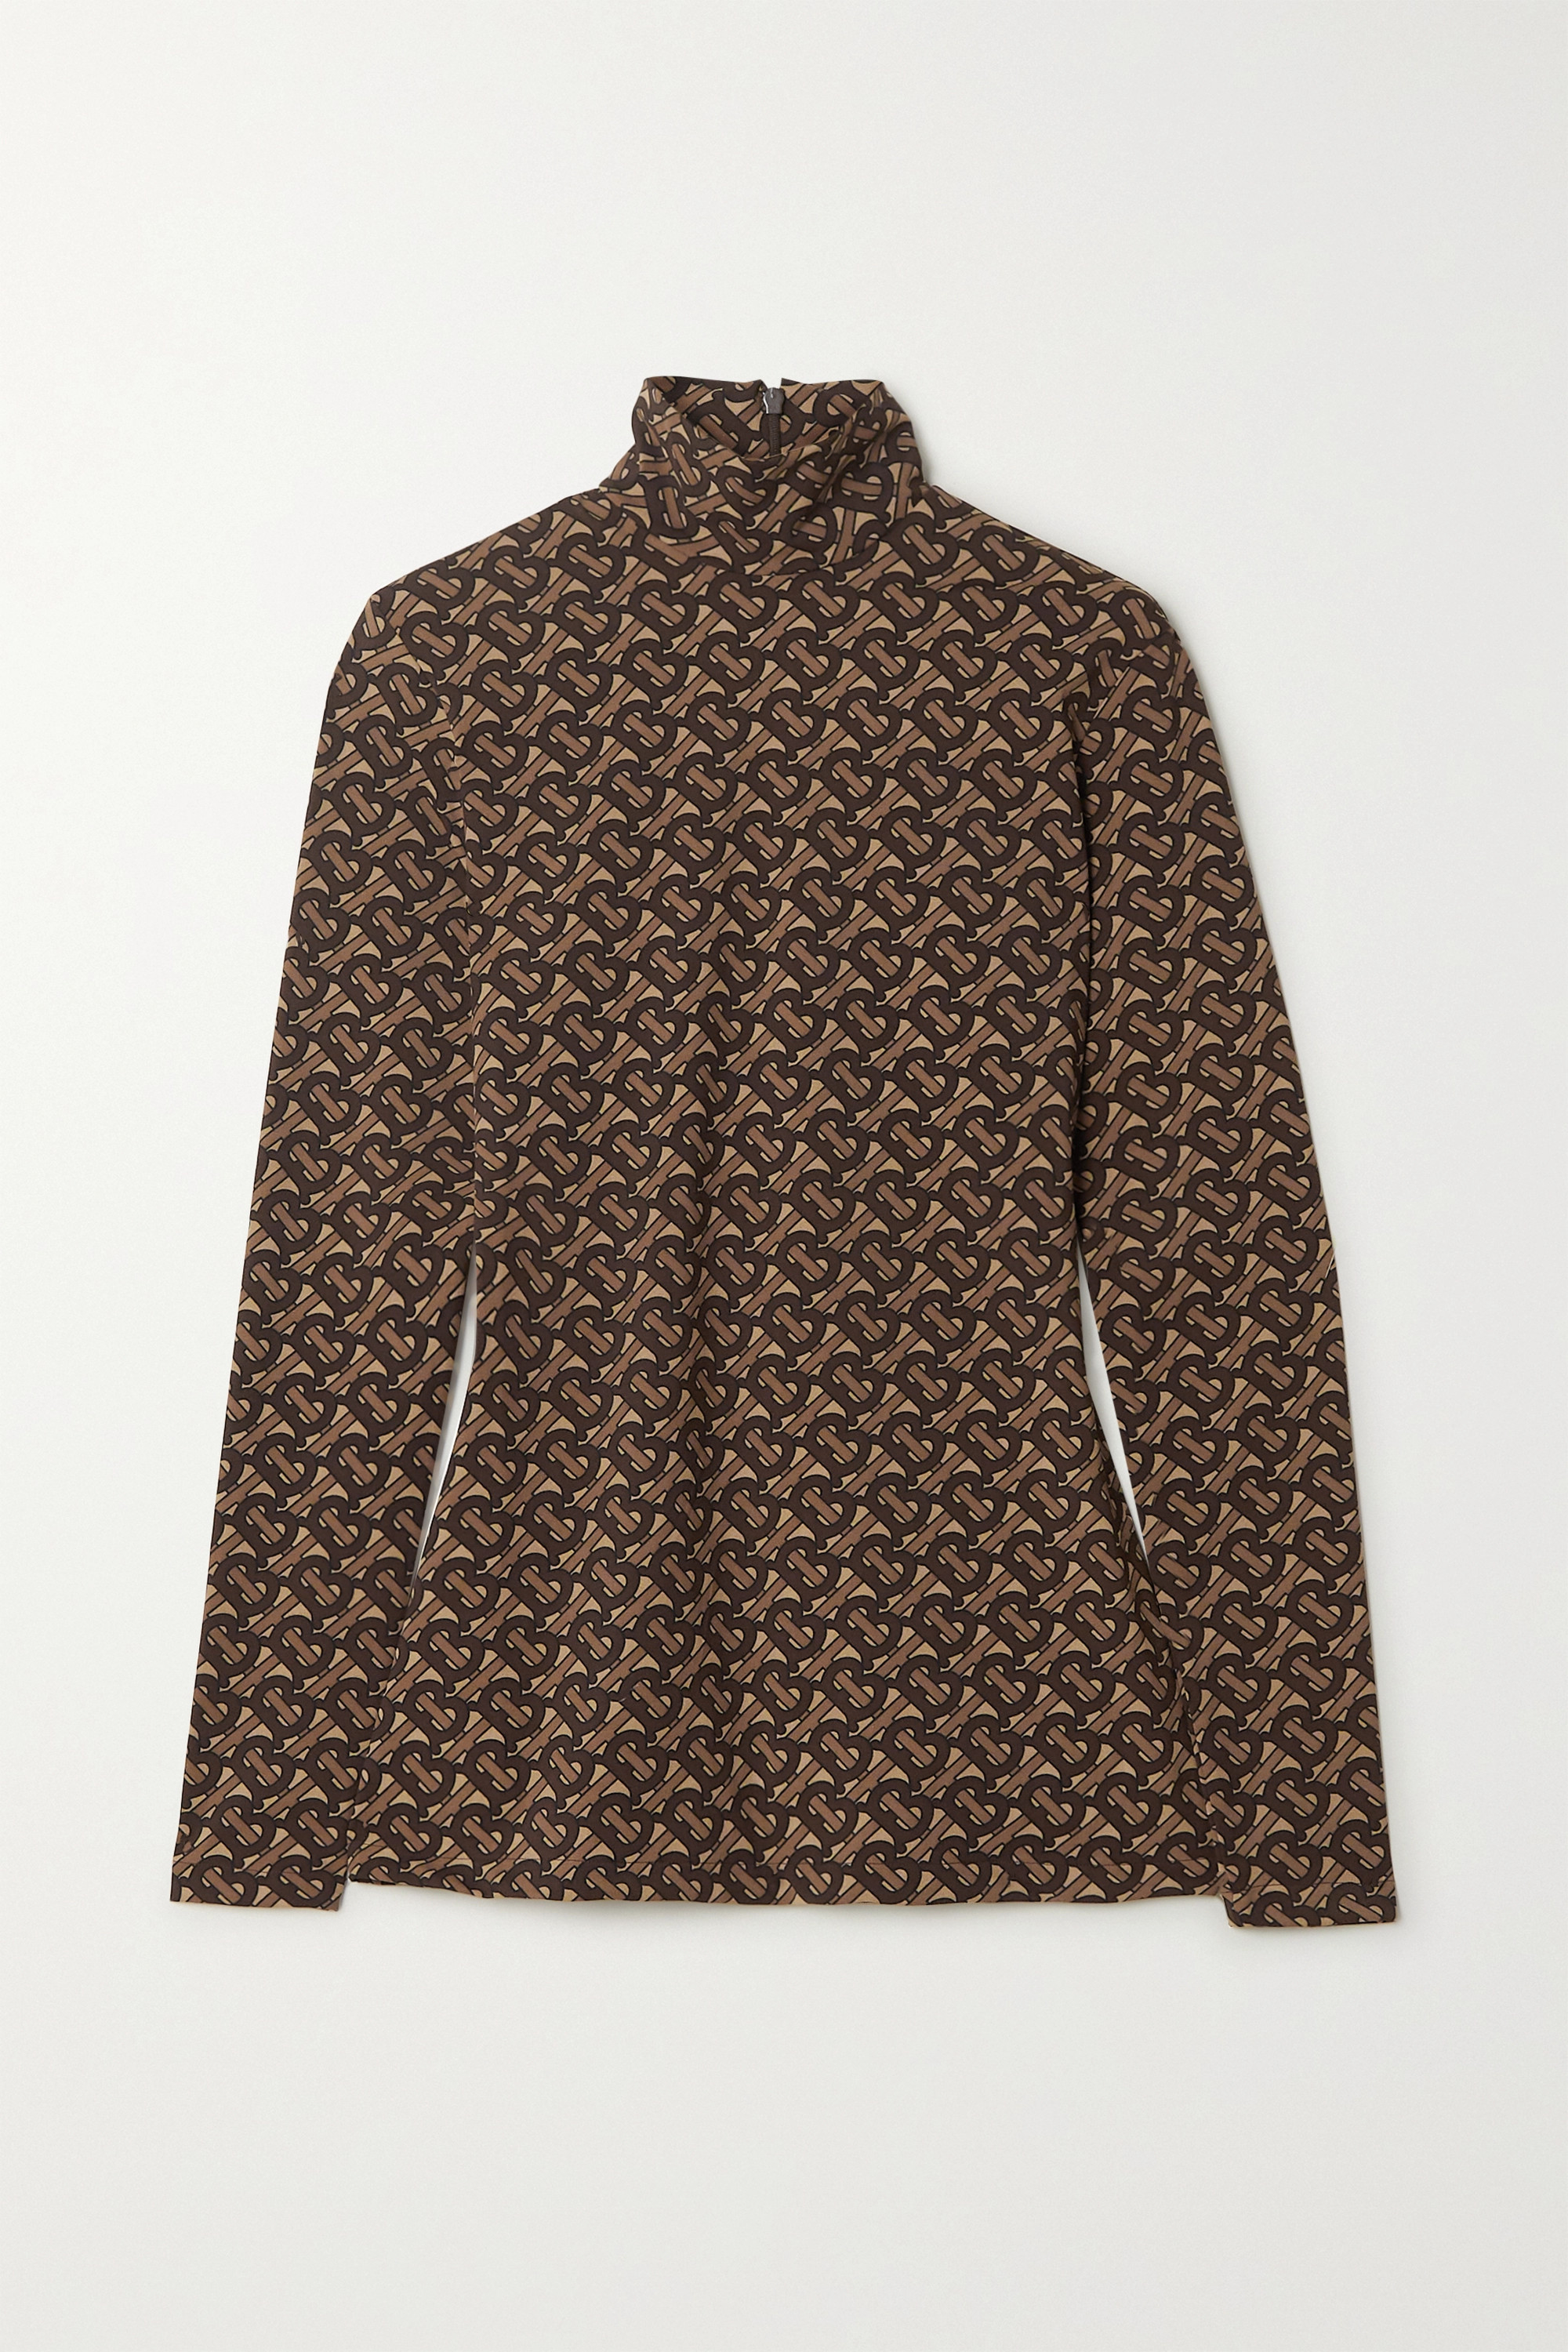 Burberry Printed stretch-jersey turtleneck top